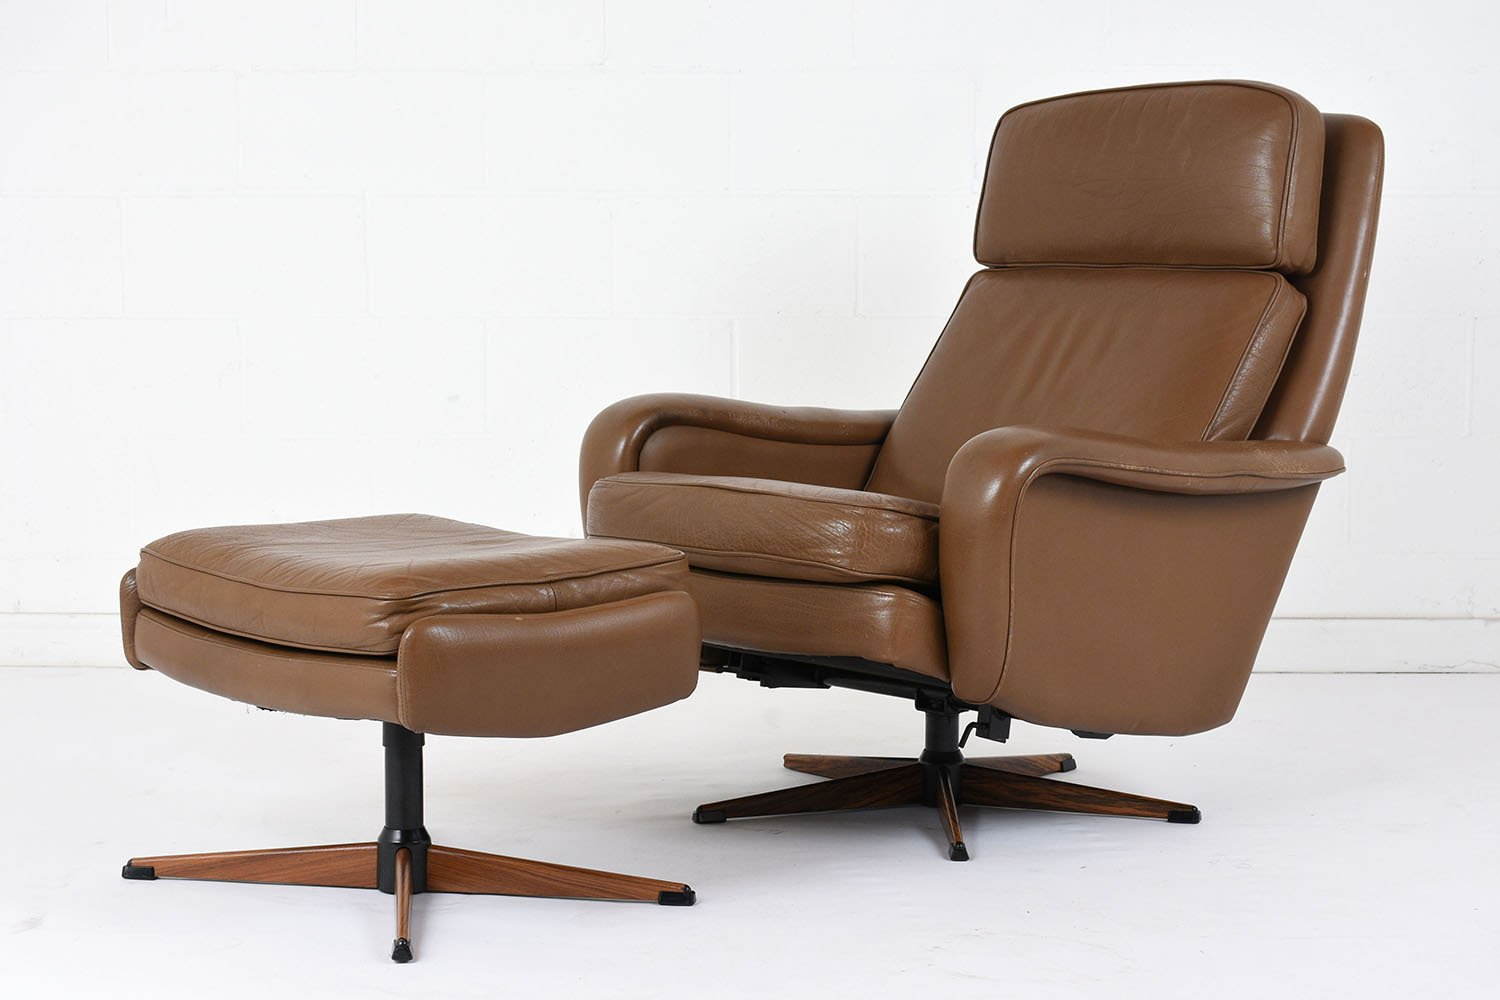 vintage leather lounge chair and ottoman 1960s for sale at pamono. Black Bedroom Furniture Sets. Home Design Ideas